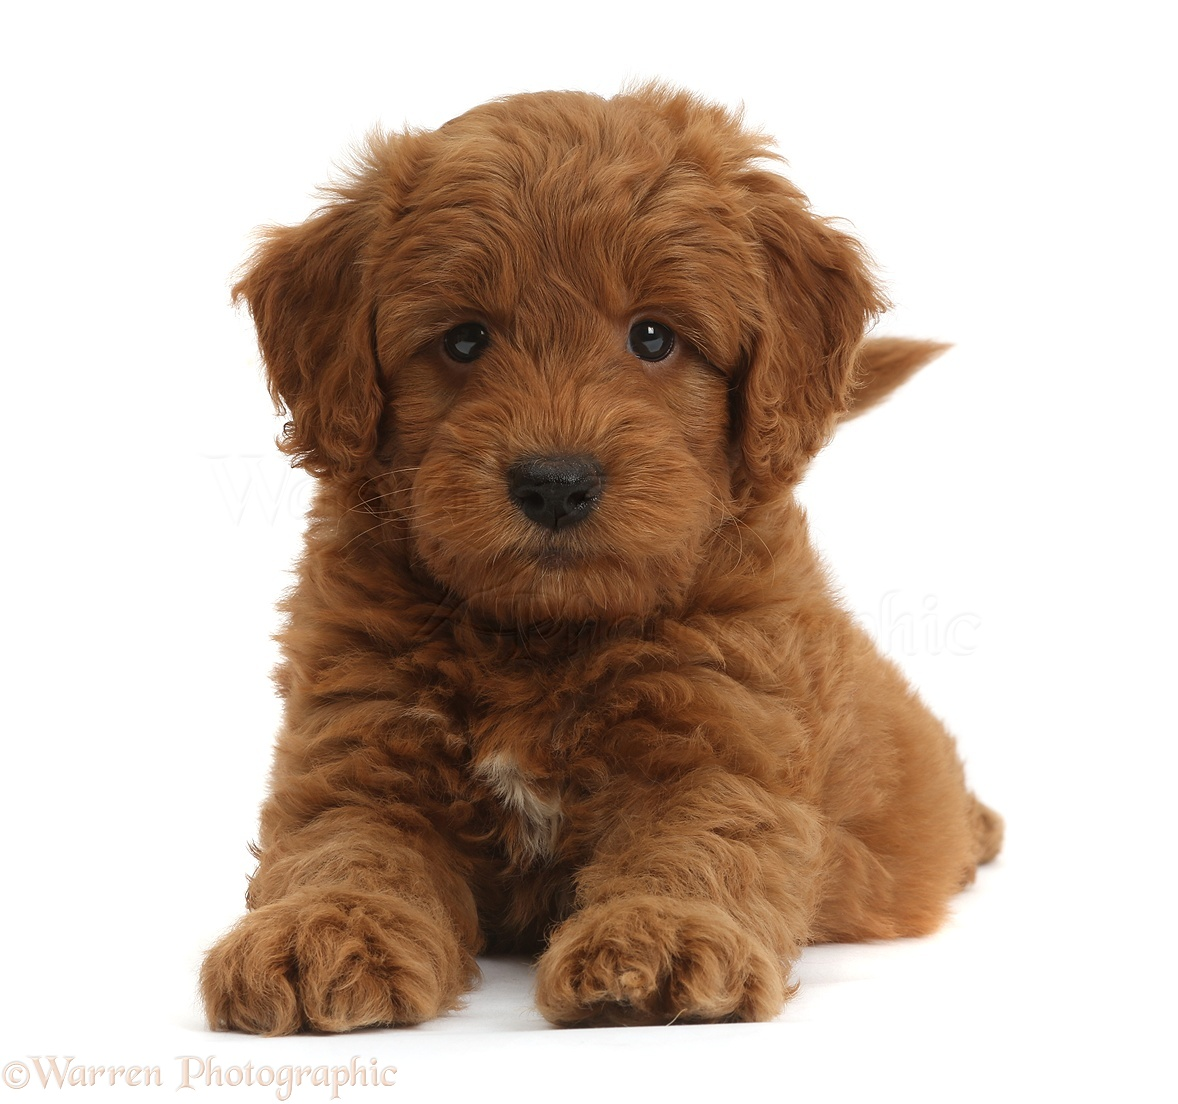 Dog Cute Playful Red F1b Goldendoodle Puppy Photo Wp36751